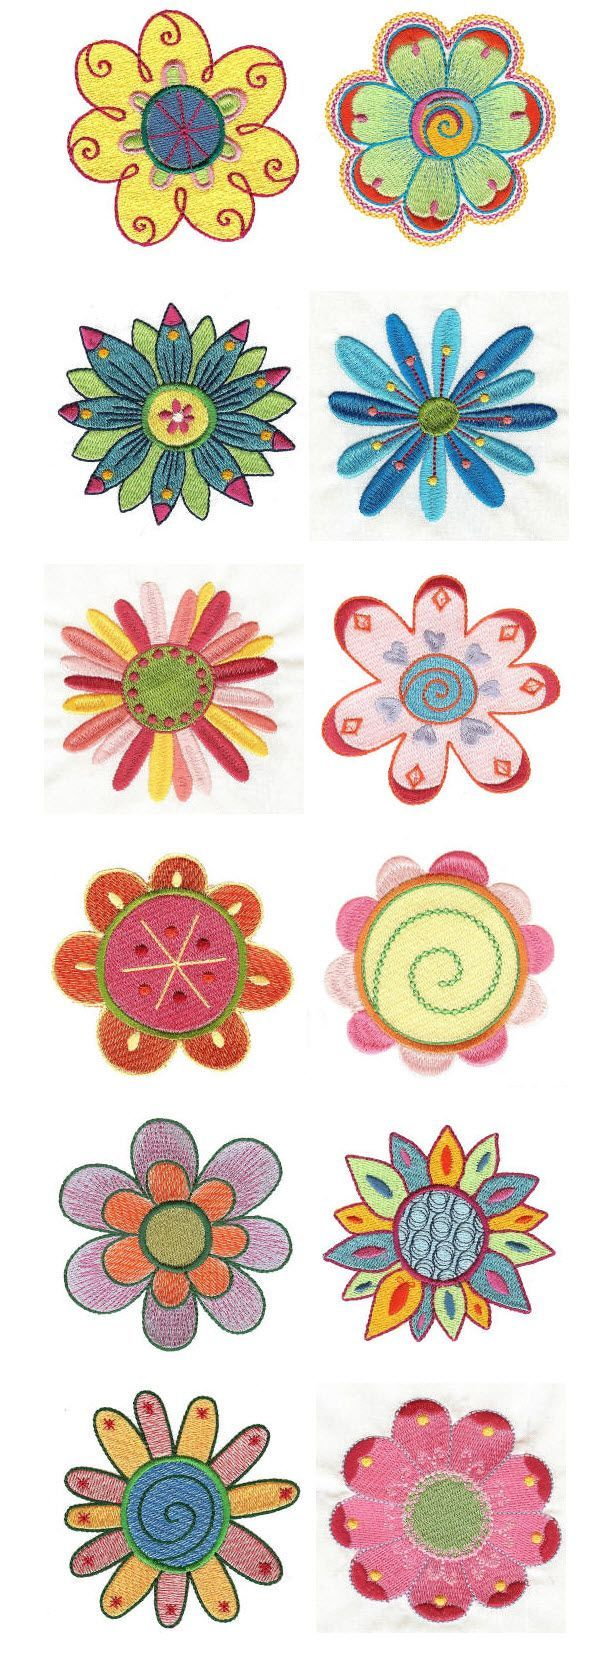 283726845245213490 Embroidery | Free Machine Embroidery Designs | My Funky Garden Flowers